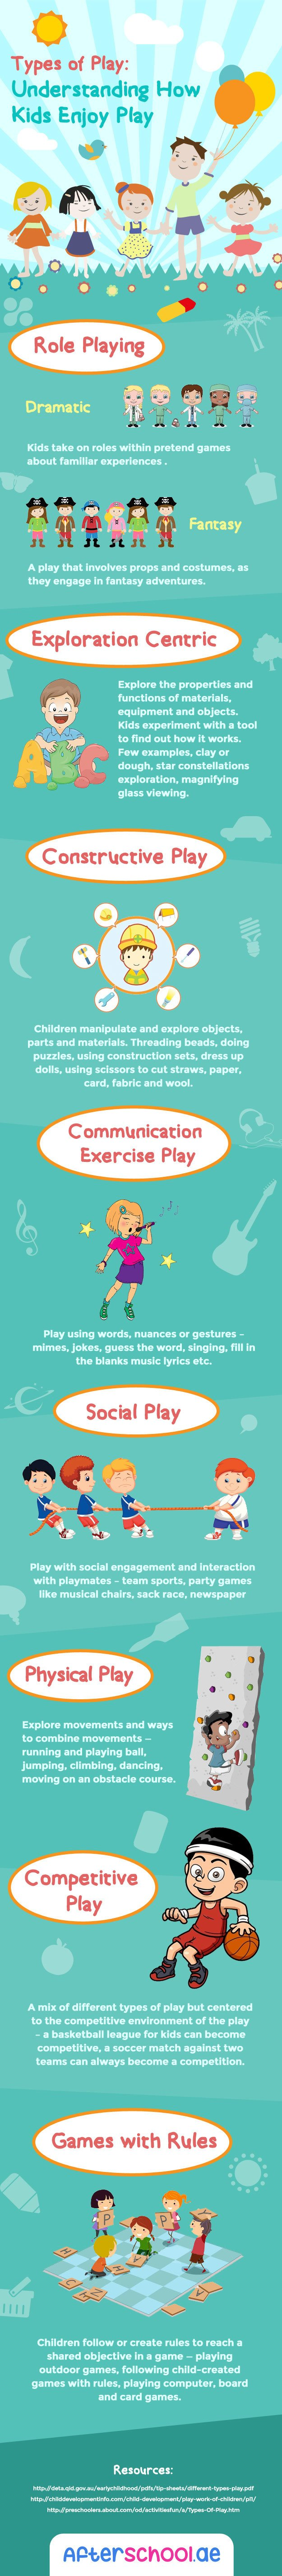 Different Ways Kids Play Infographic